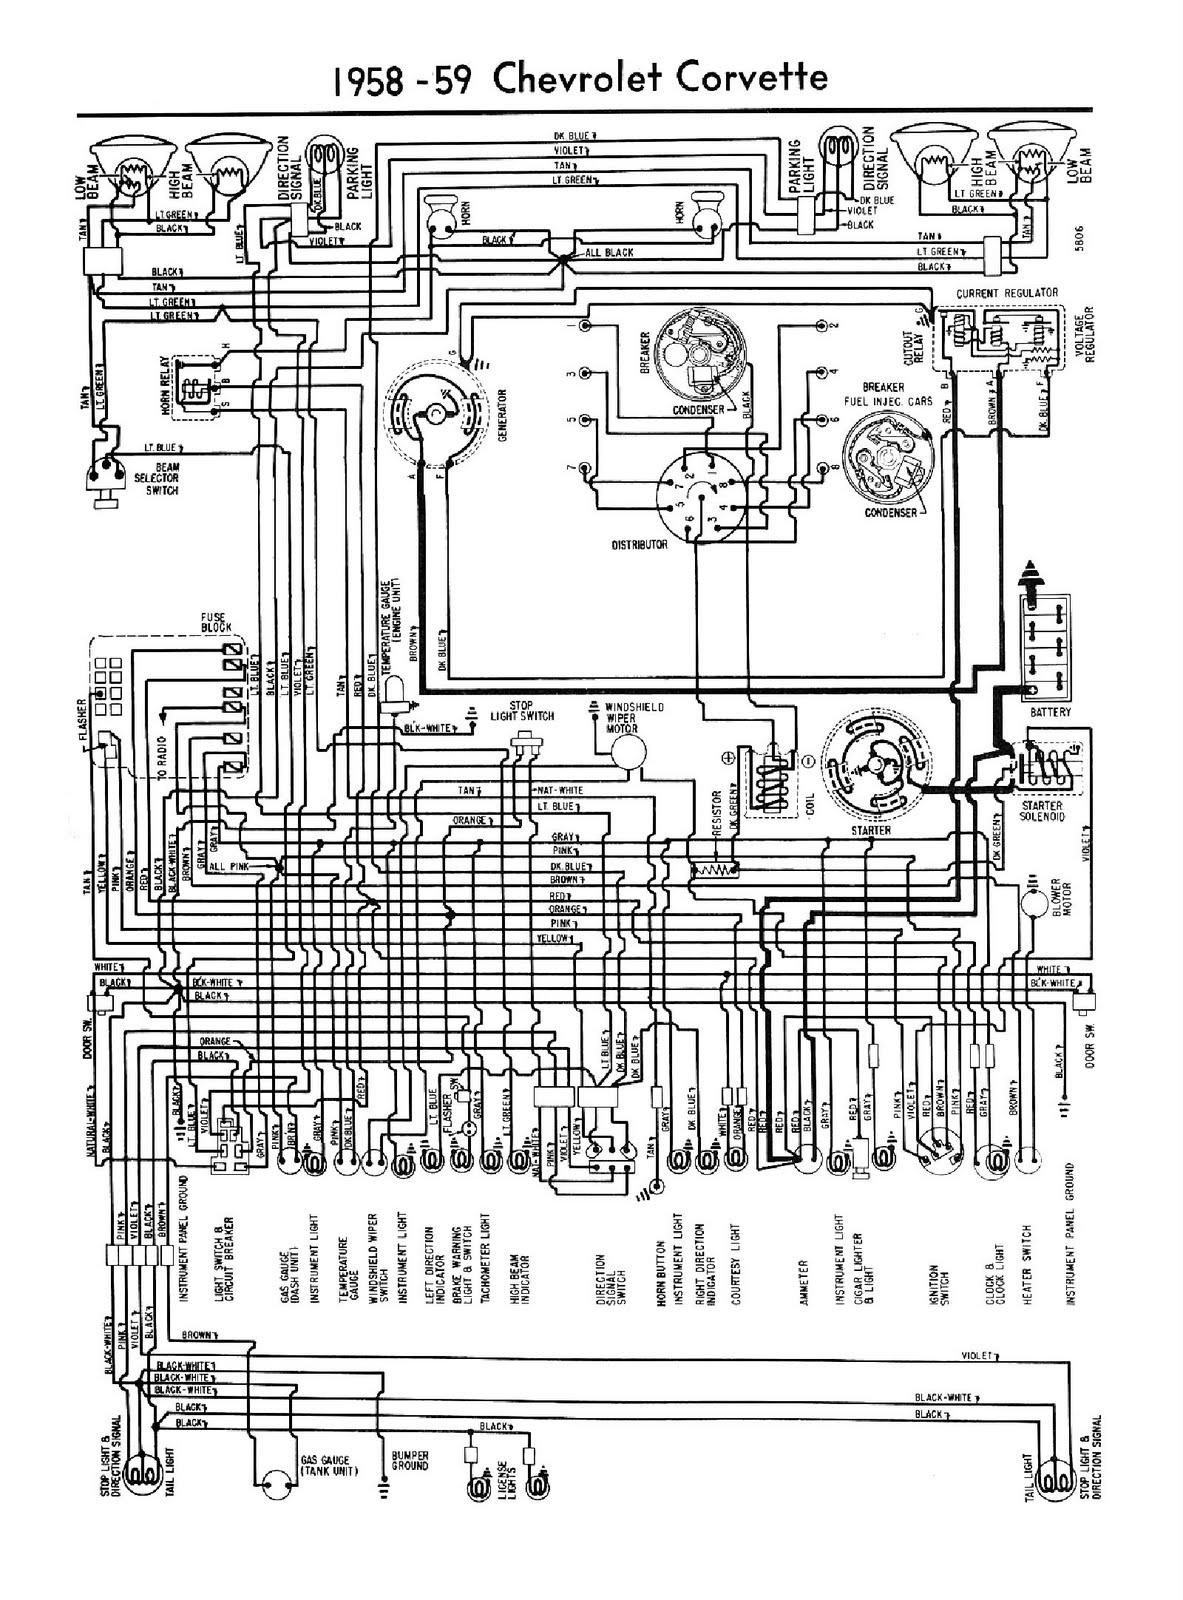 1959 Cadillac Wiring Diagram Will Be A Thing Eldorado Fuse Free Auto 1958 Chevrolet Corvette 1962 Radio